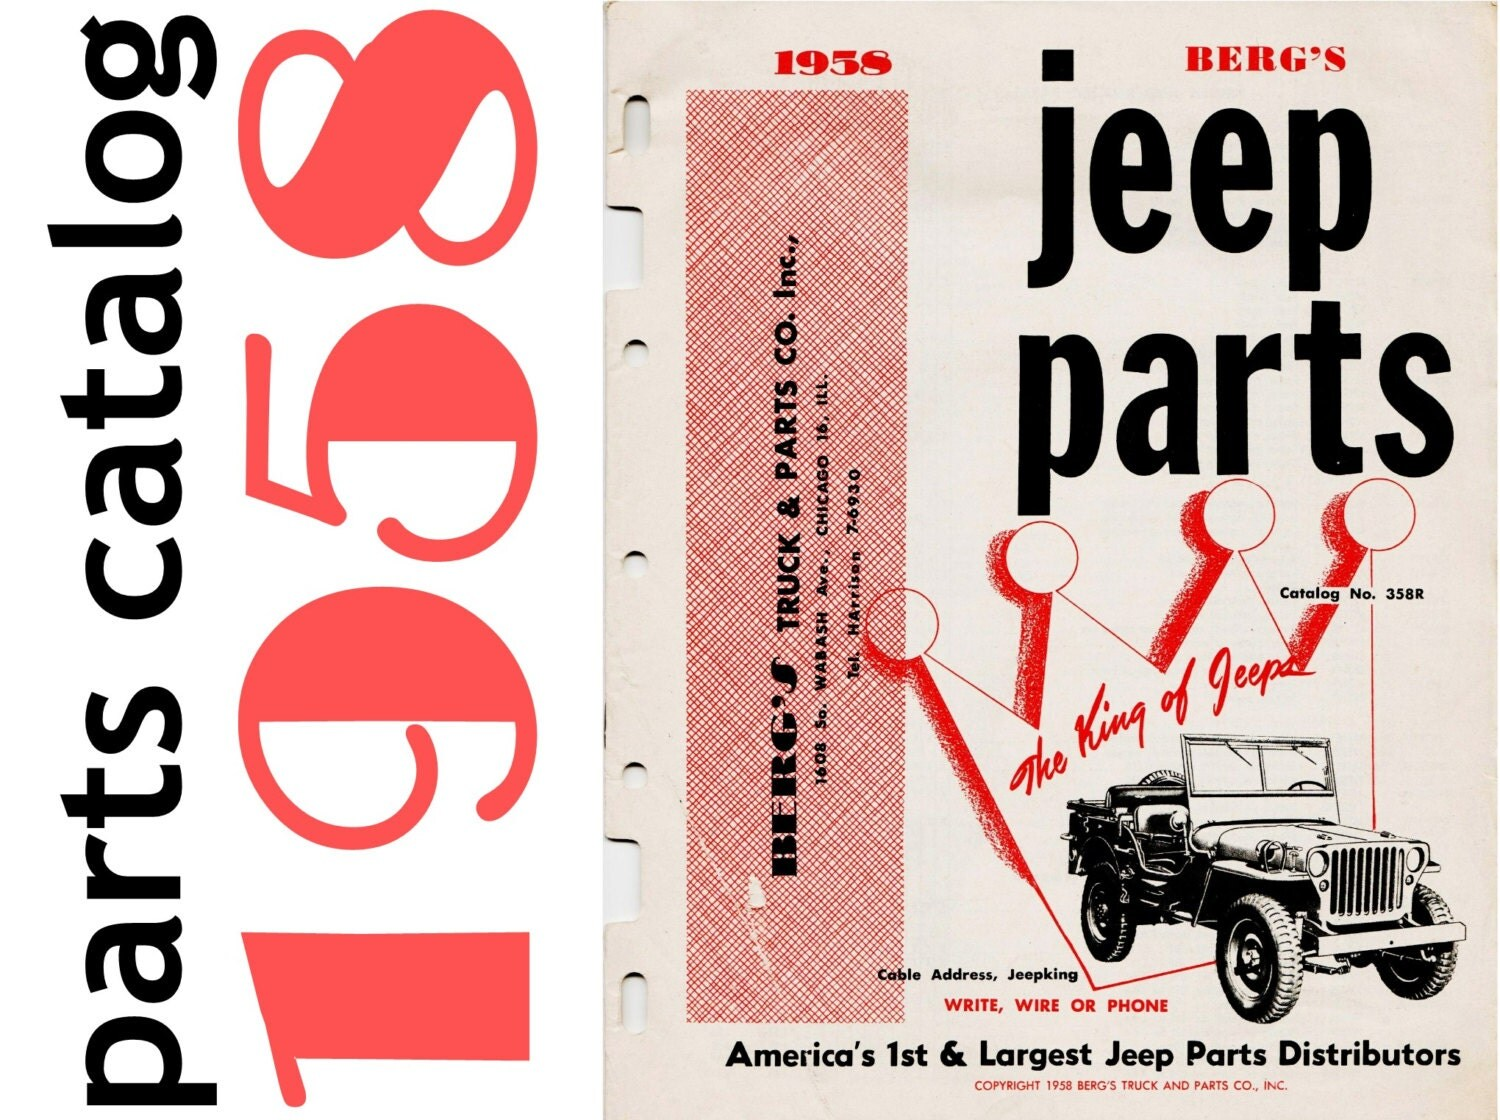 1958 jeep parts catalog berg 39 s truck parts co jeep. Cars Review. Best American Auto & Cars Review